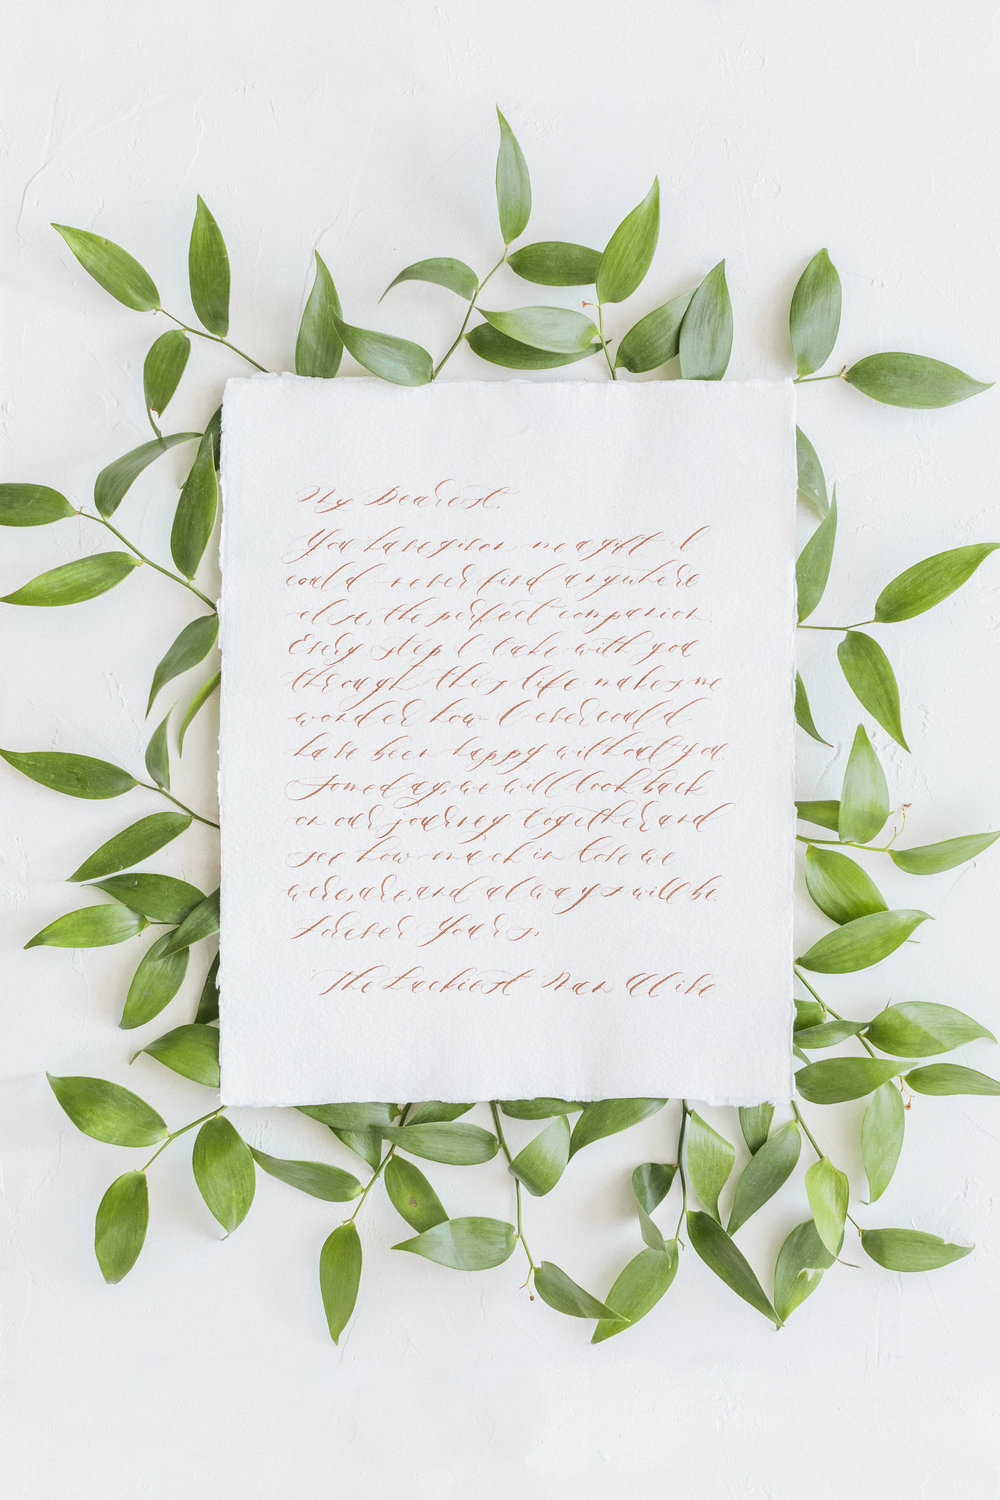 Calligraphy Love Letter on Handmade Paper by Locust House Fine Stationery